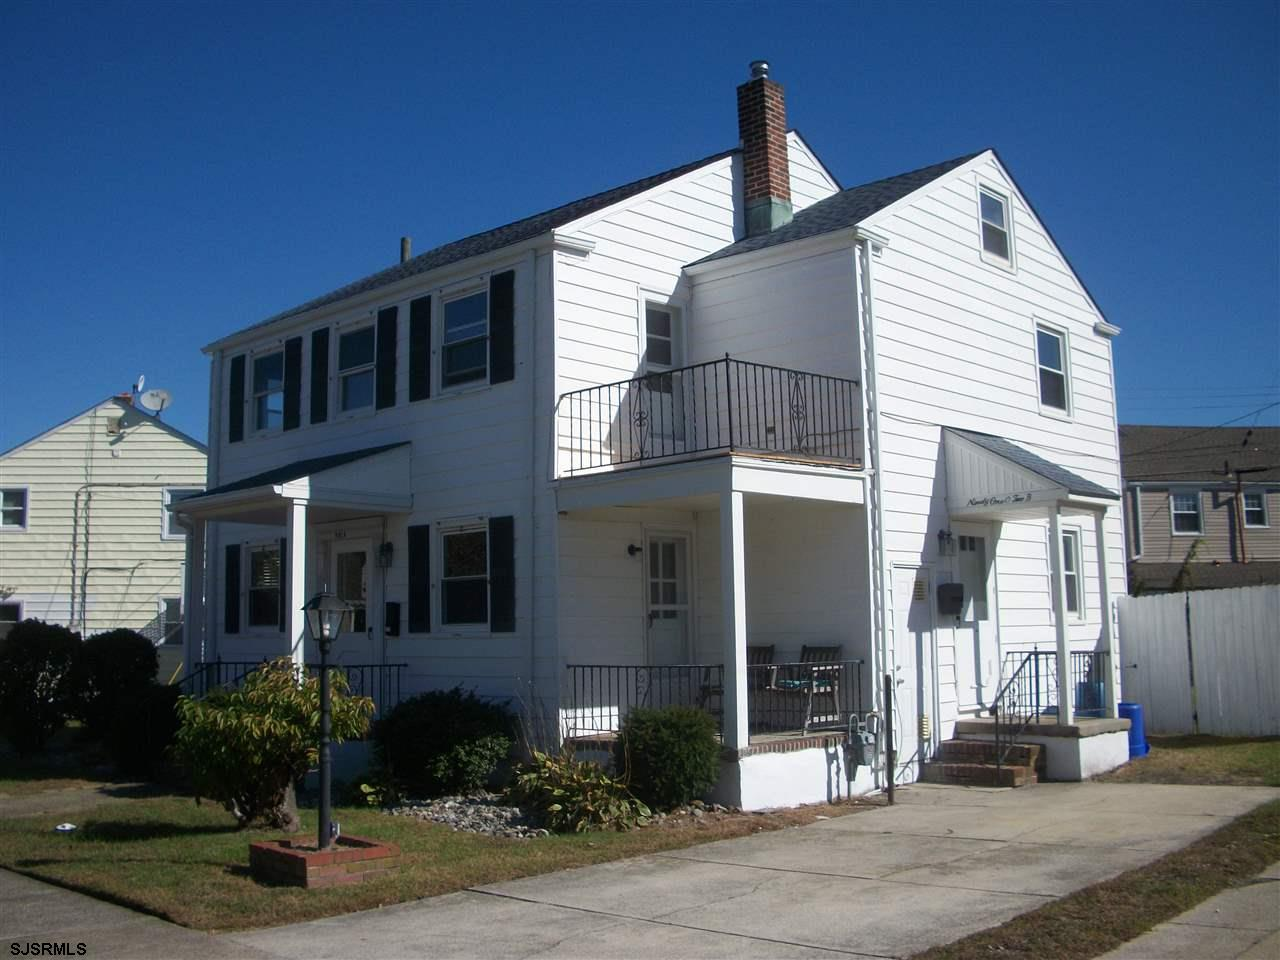 Freshly painted and ready to go!  2 Bedroom 1 Bath Second Floor Duplex with a Deck off the Family Room and a Little View of the Bay!  Nice Hardwood Floors and Lots of Storage including a Walk In Closet. Close to Restaurants and Bay.  No Pets, No Smokers.